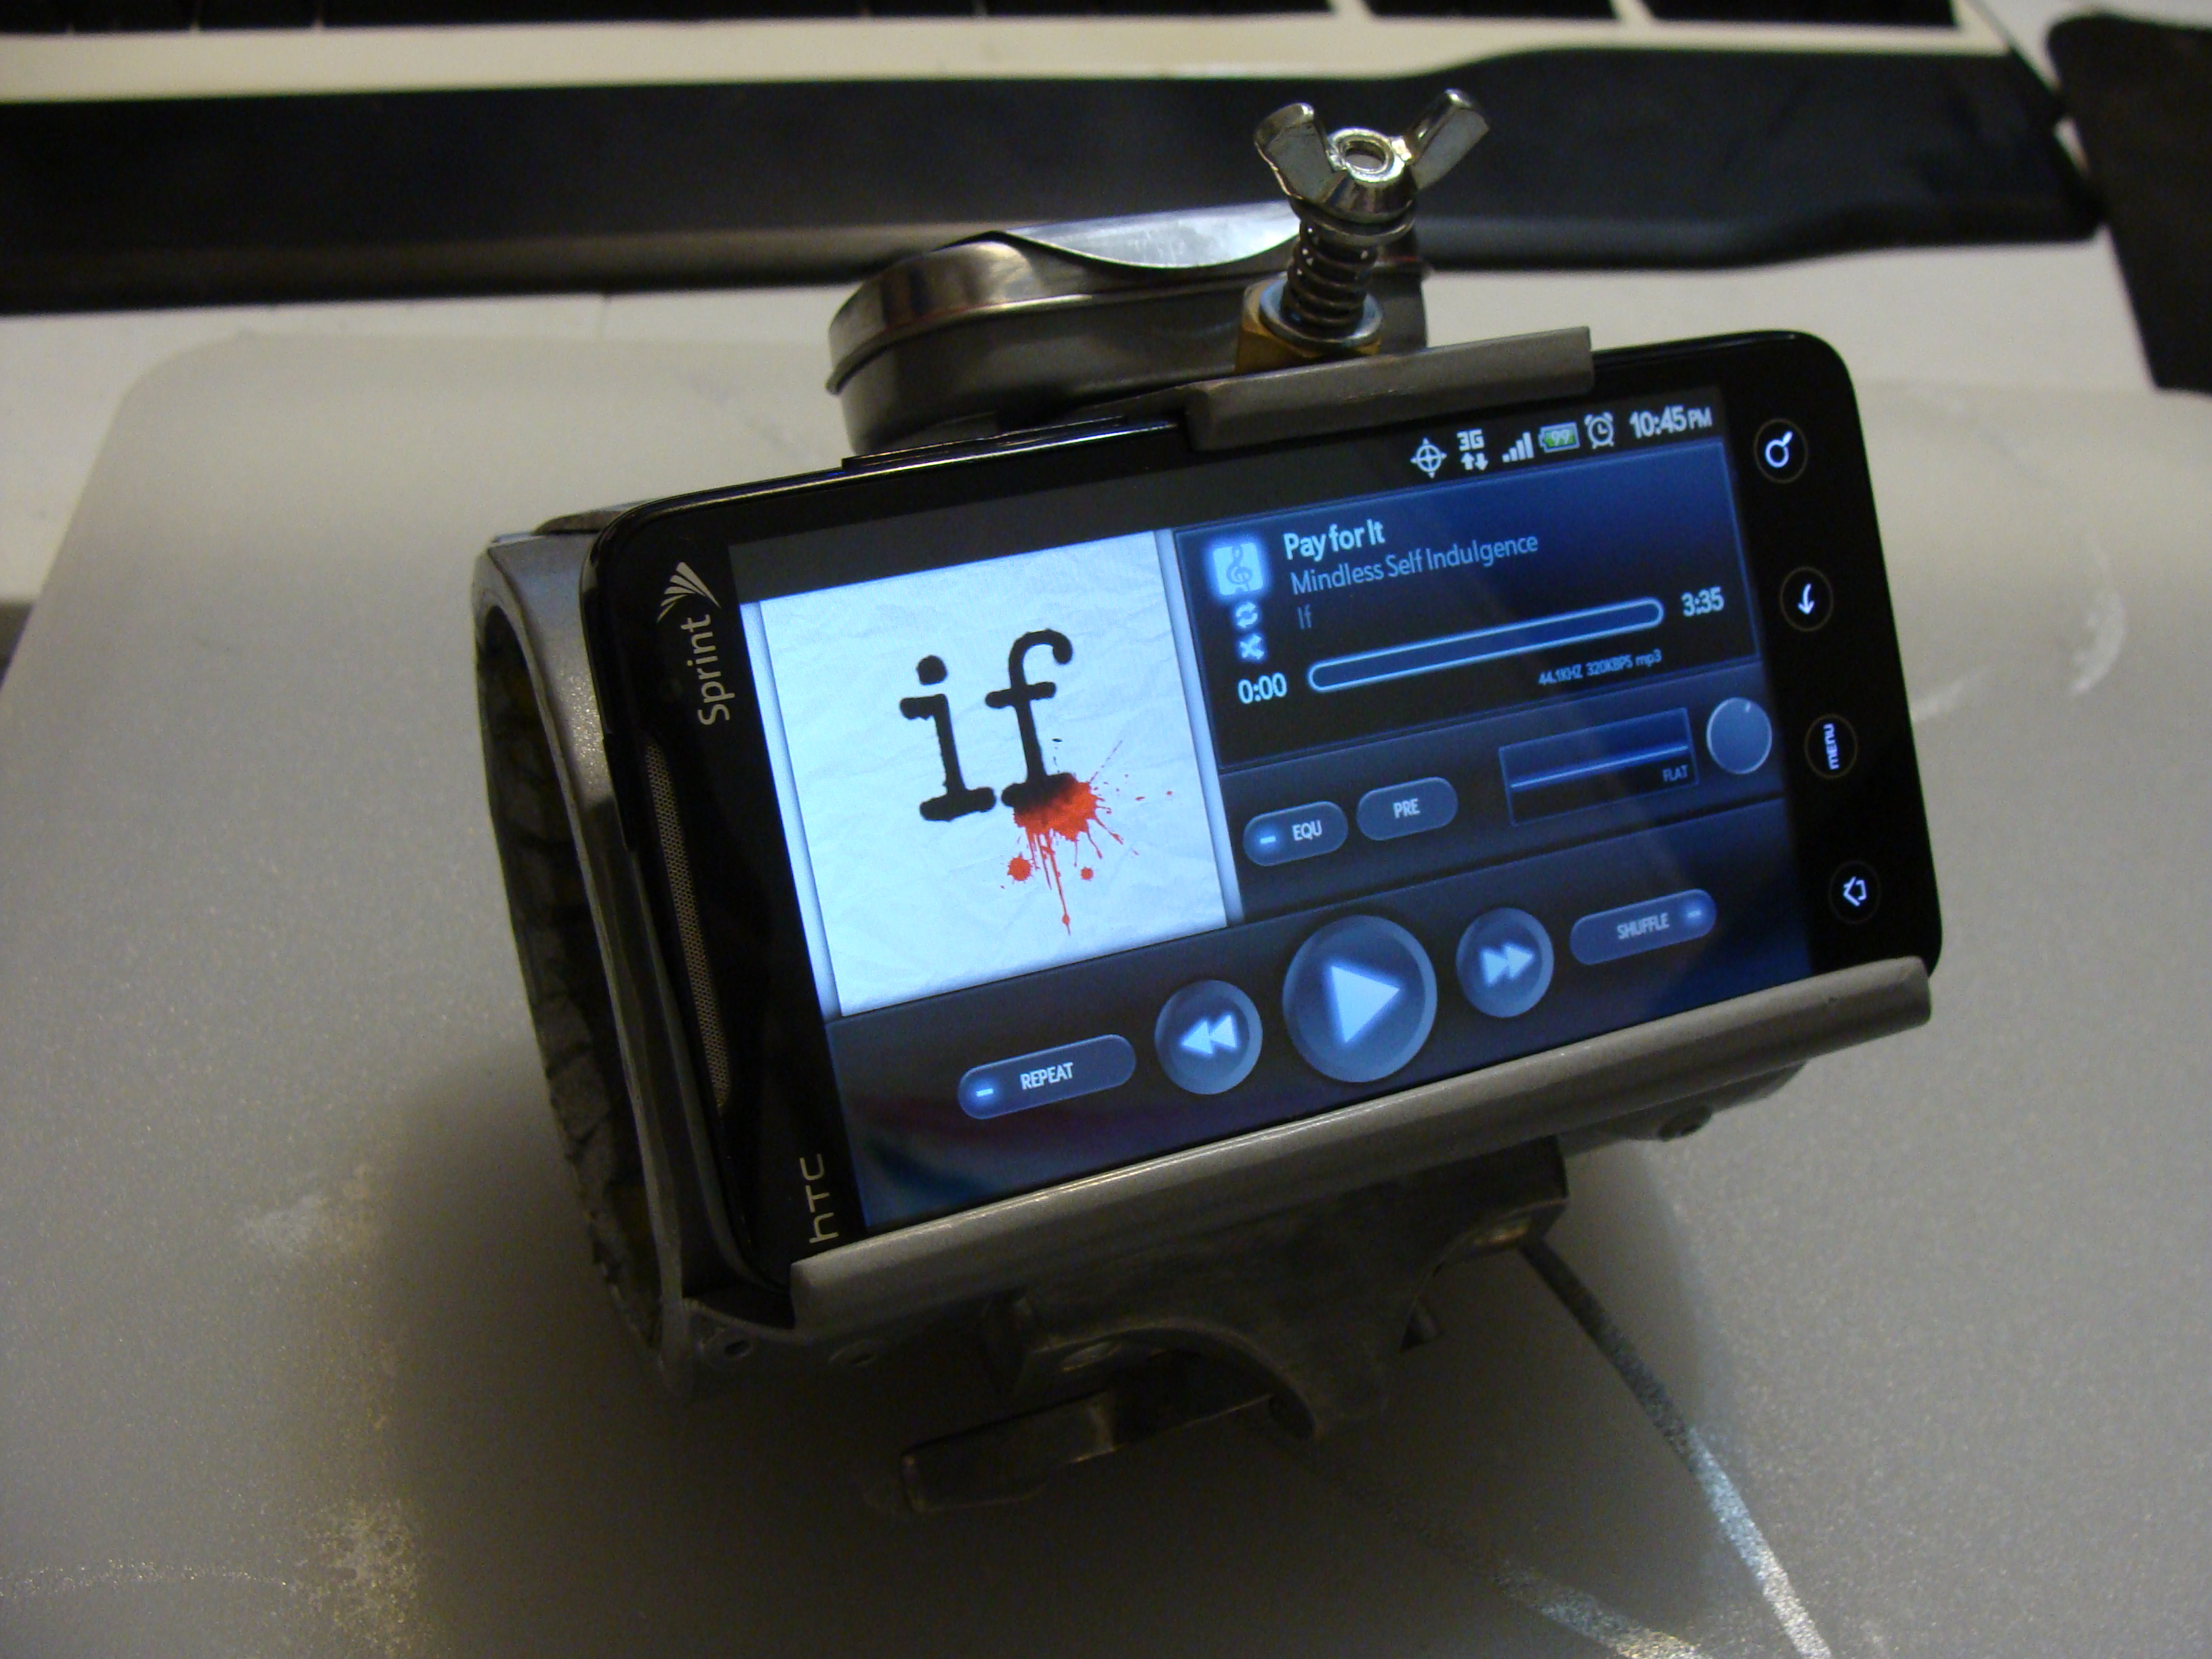 DieselPunk Pipboy 4G Wrist Thingy Phone Mount